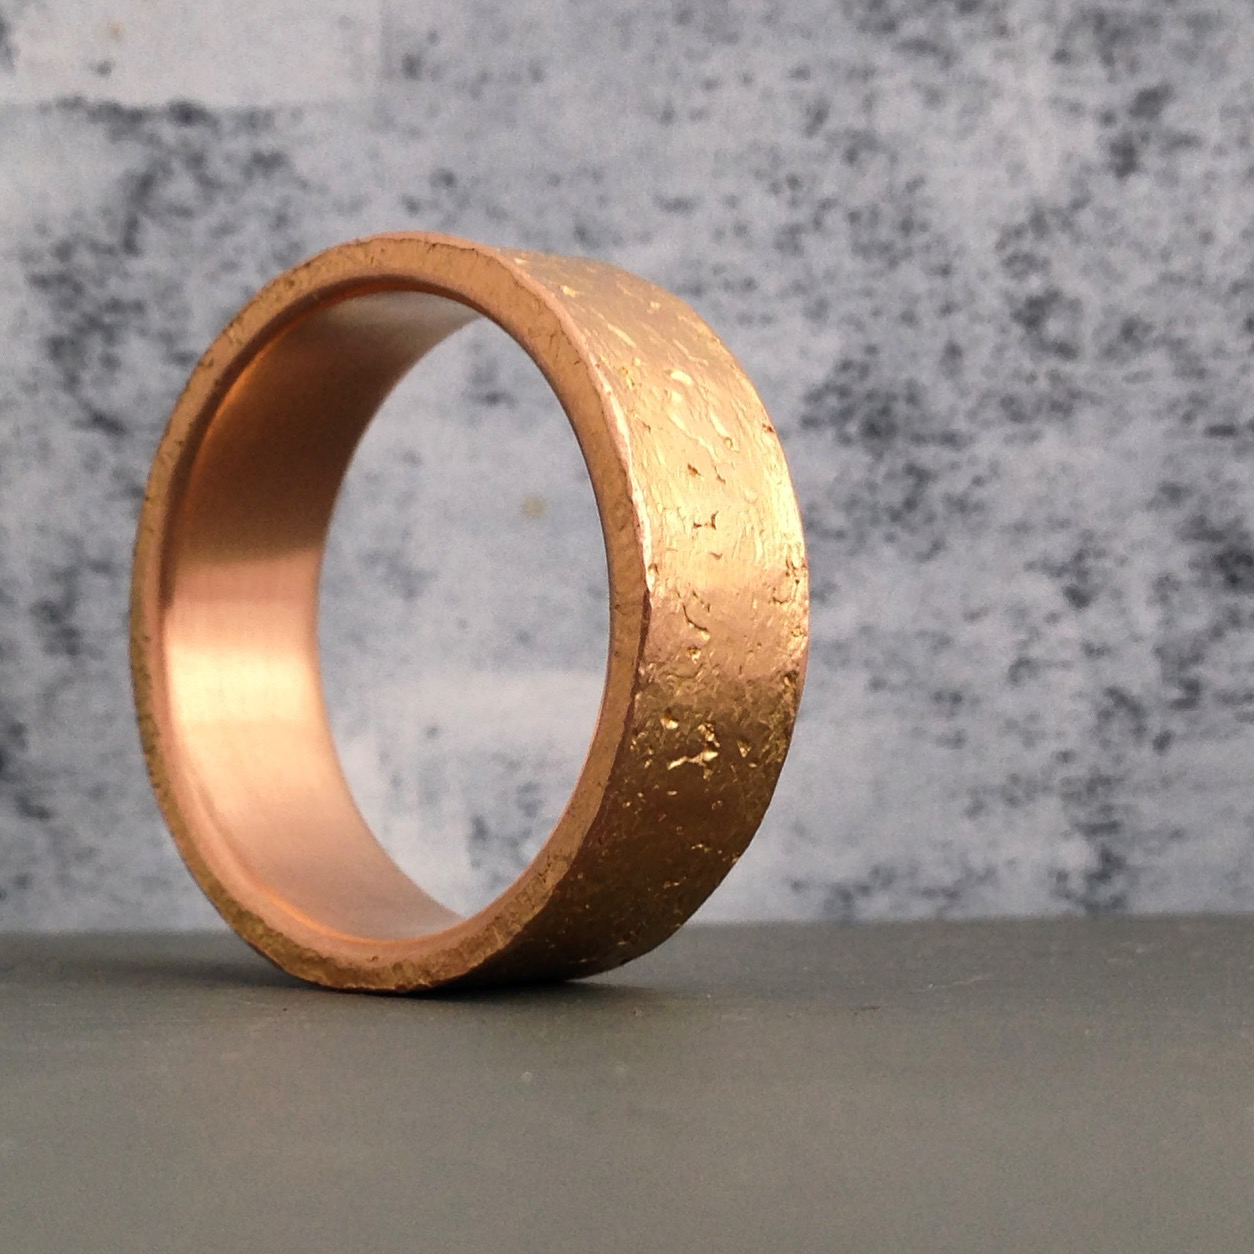 Etched textural ring.